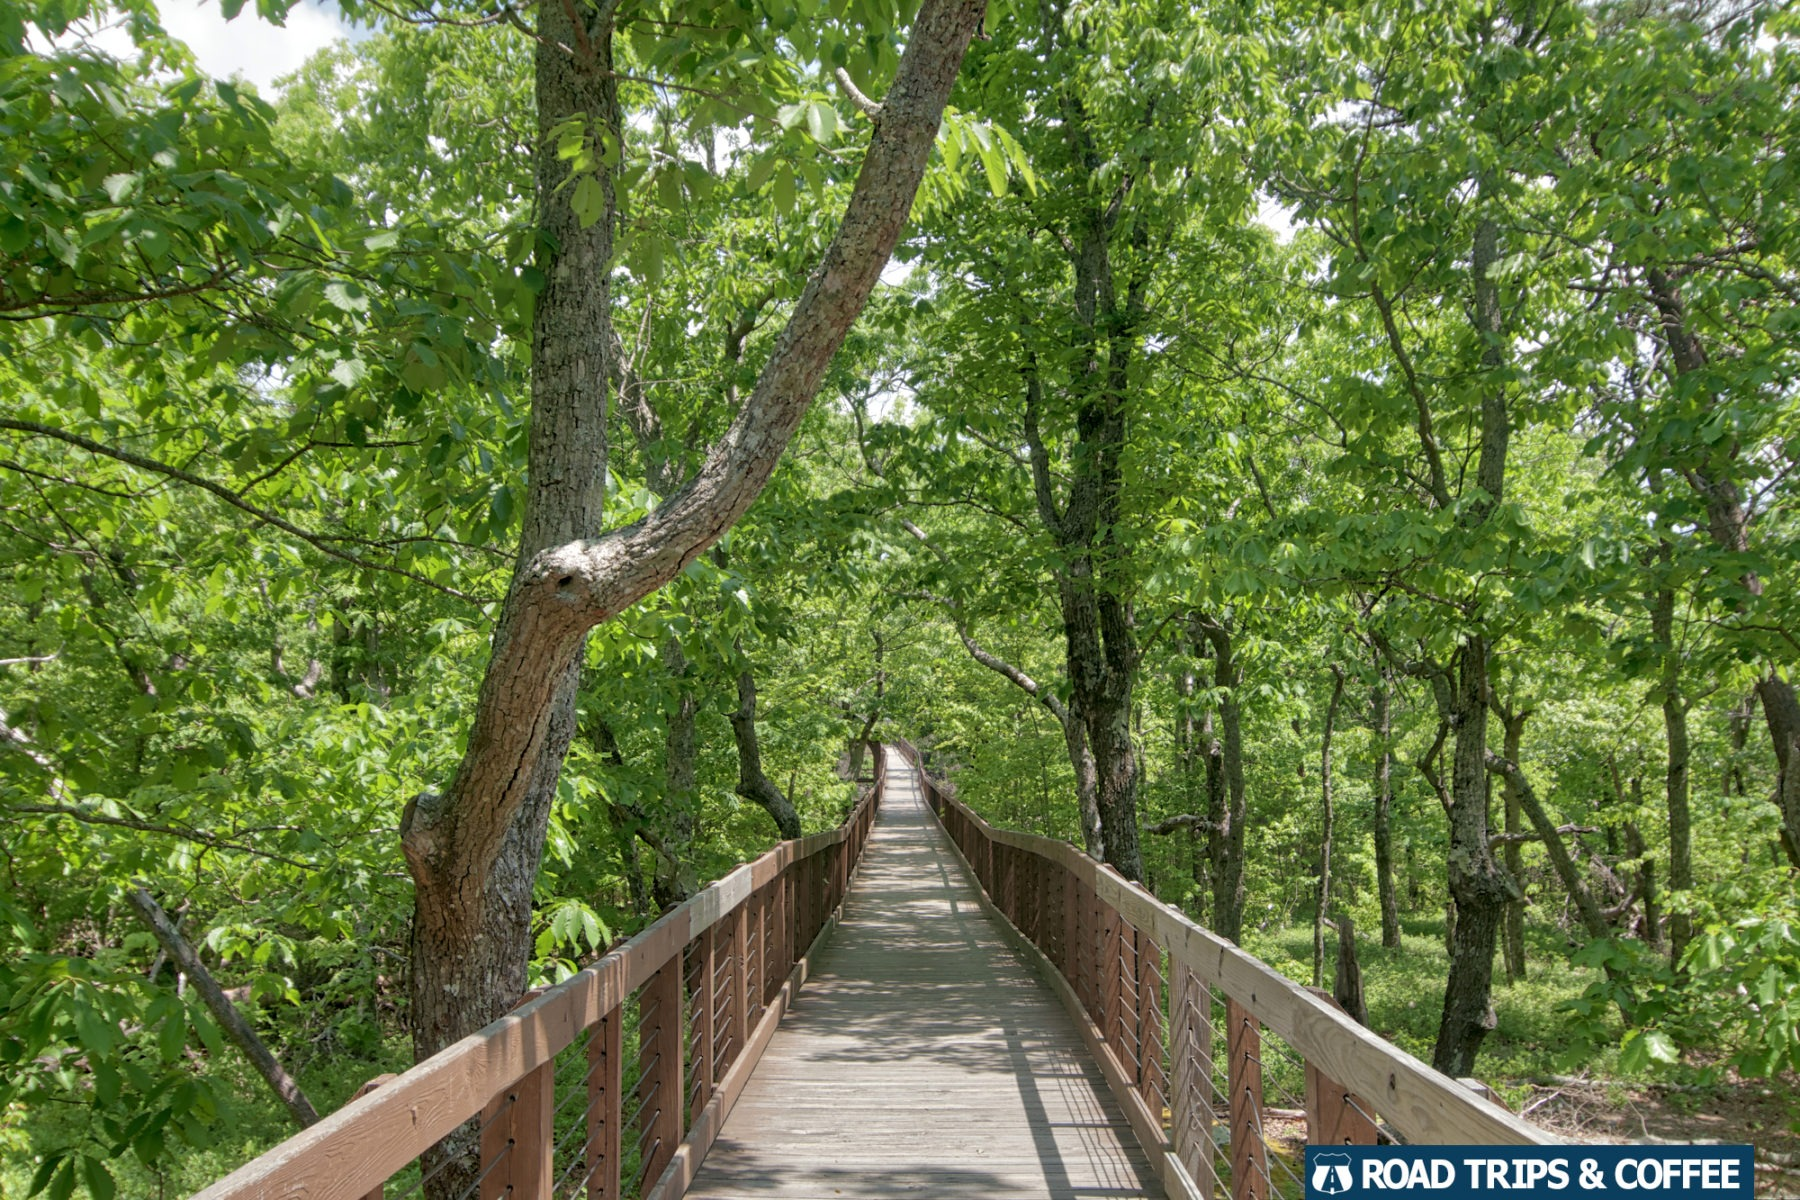 A long wooden boardwalk surrounded by trees at Cheaha State Park in Alabama.